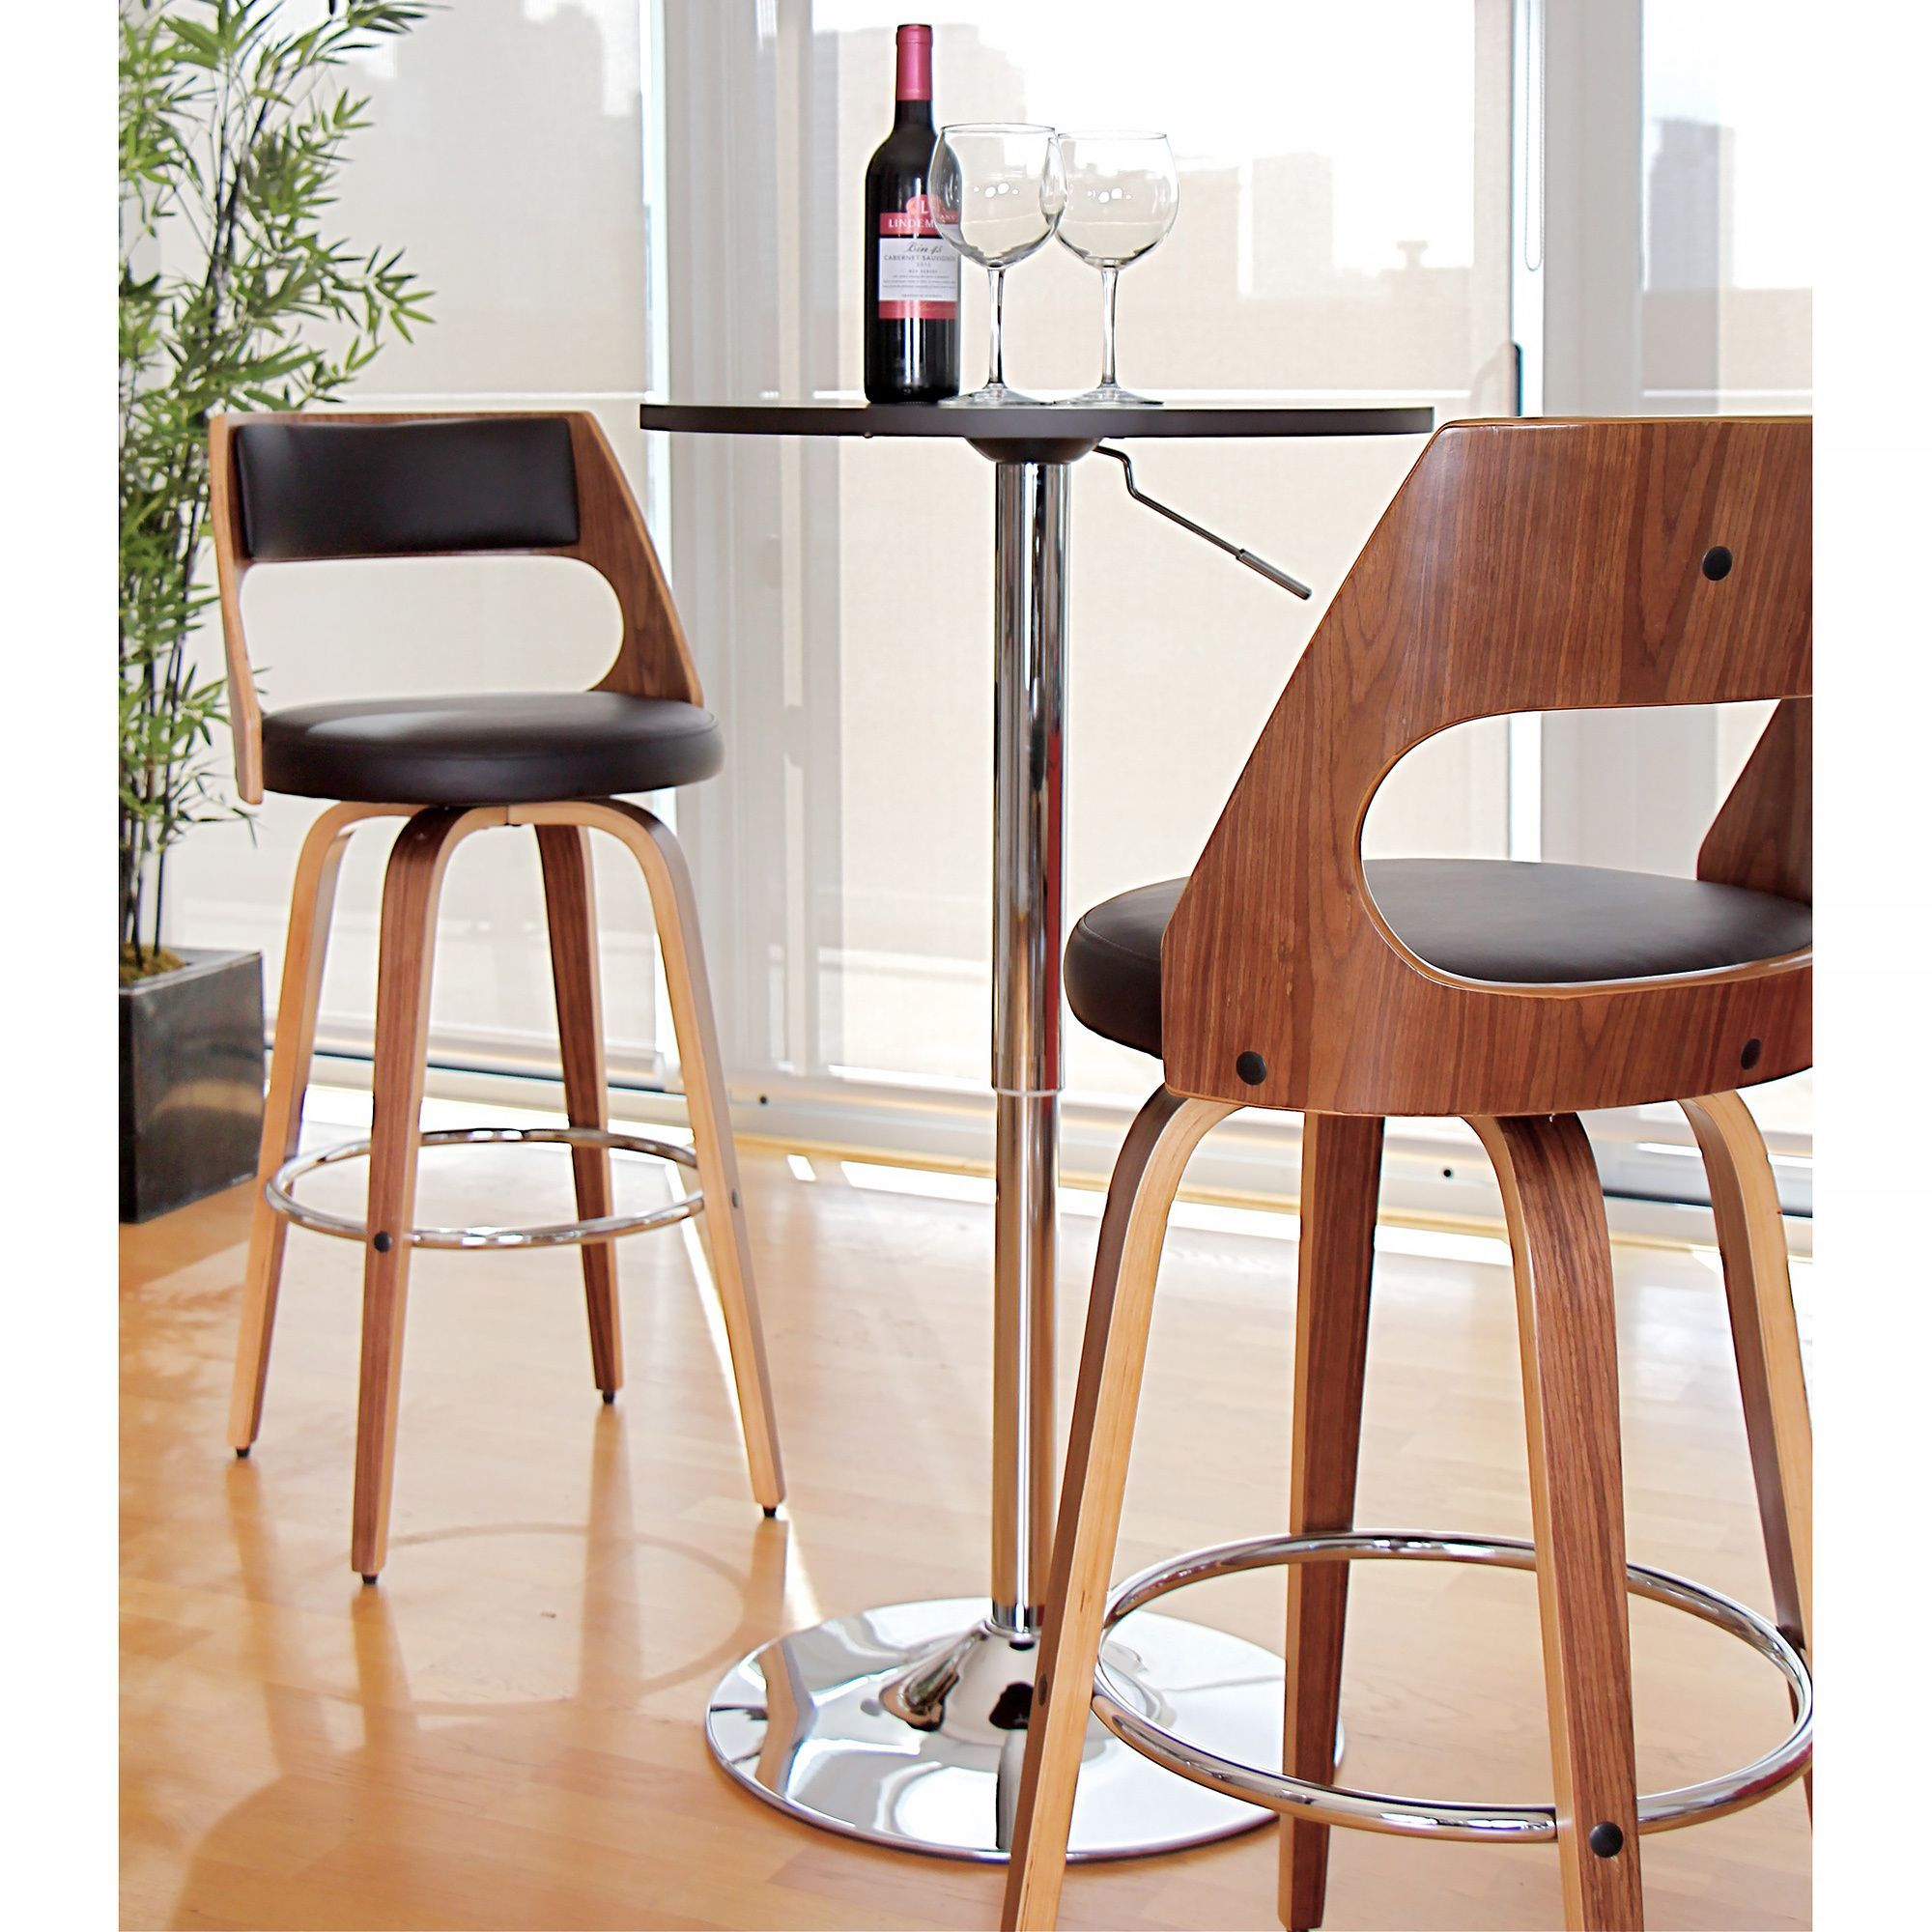 Wood Kitchen Counter Stools Step Into The Future Of Kitchen Design With The Modern